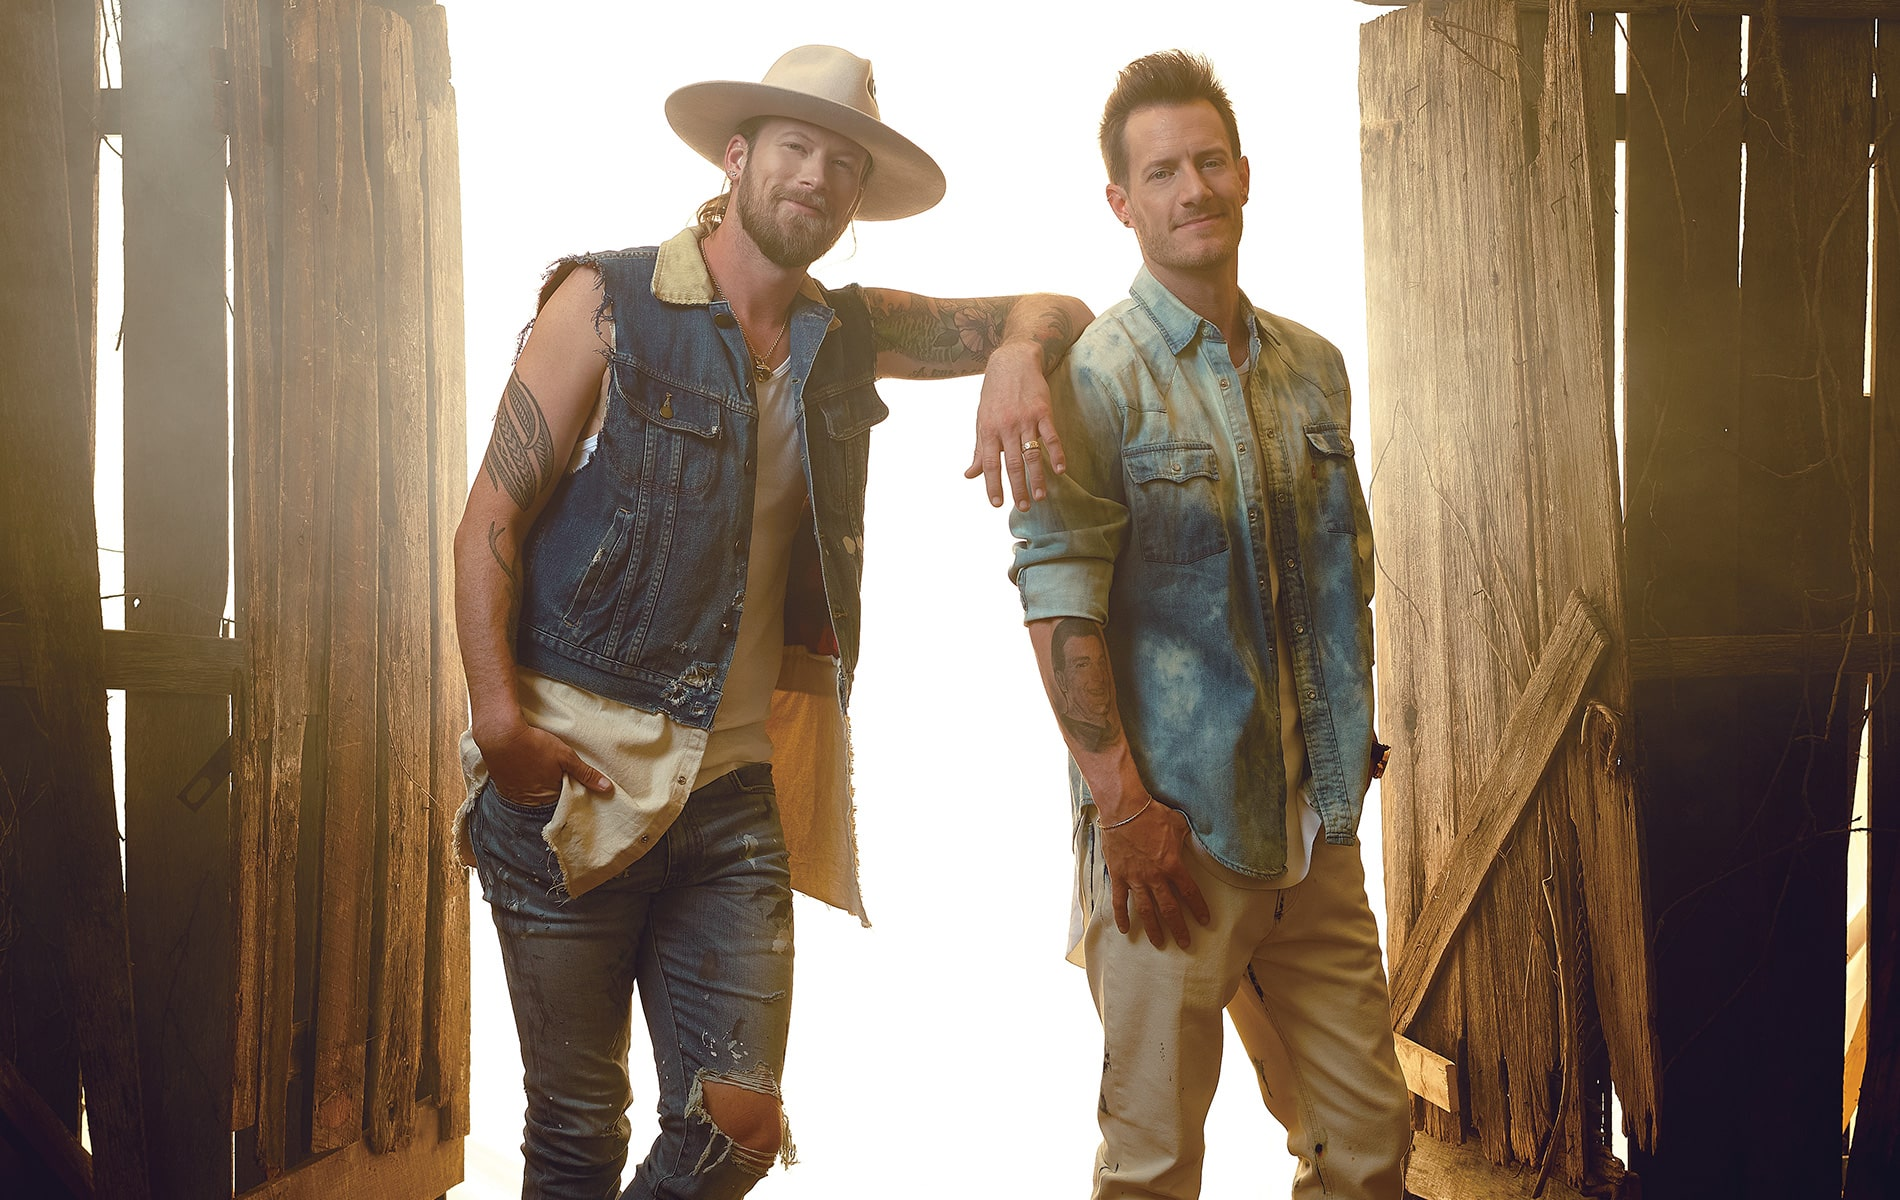 FGL's new album, Can't Say I Ain't Country, will be released on February 15, 2019.